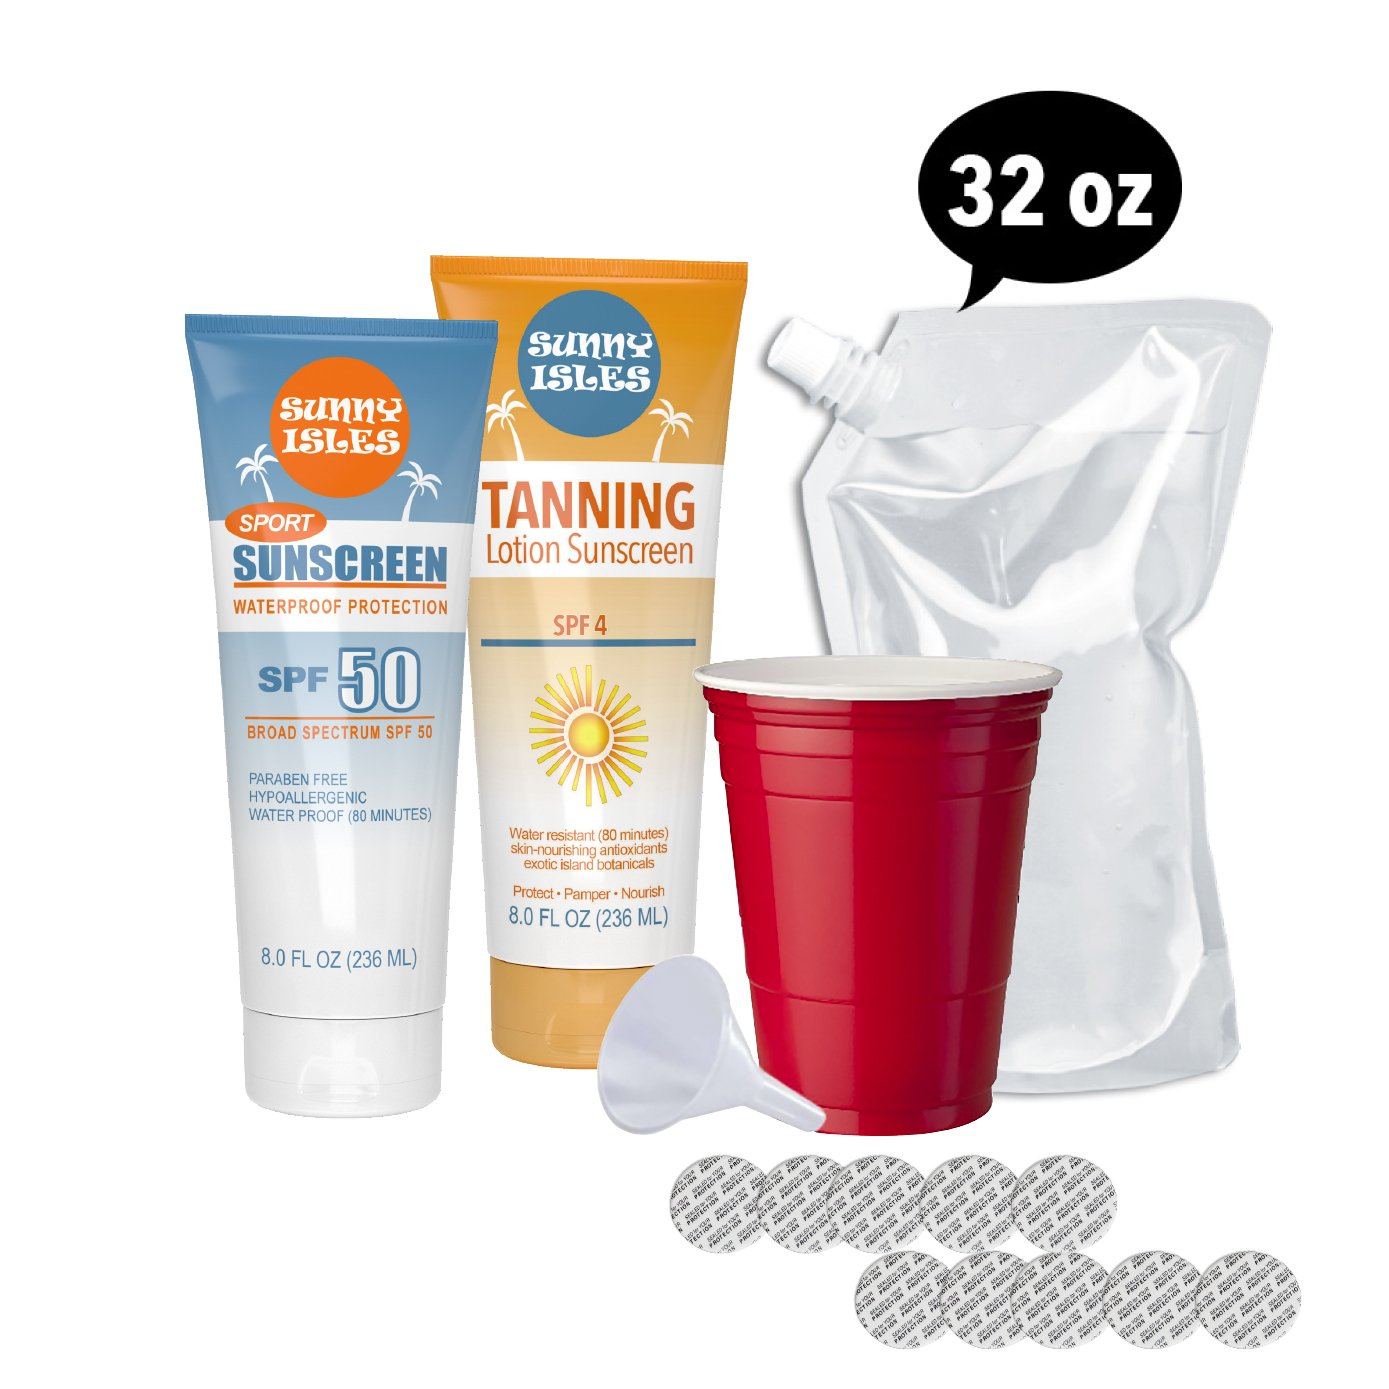 Hidden Flask - Sunscreen and Tanning Lotion Set - Includes 2 8oz Tubes, Funnel, 10 Seals, and 1 Free 32oz Cruise Flask (Sunscreen and Tanning Lotion Set)